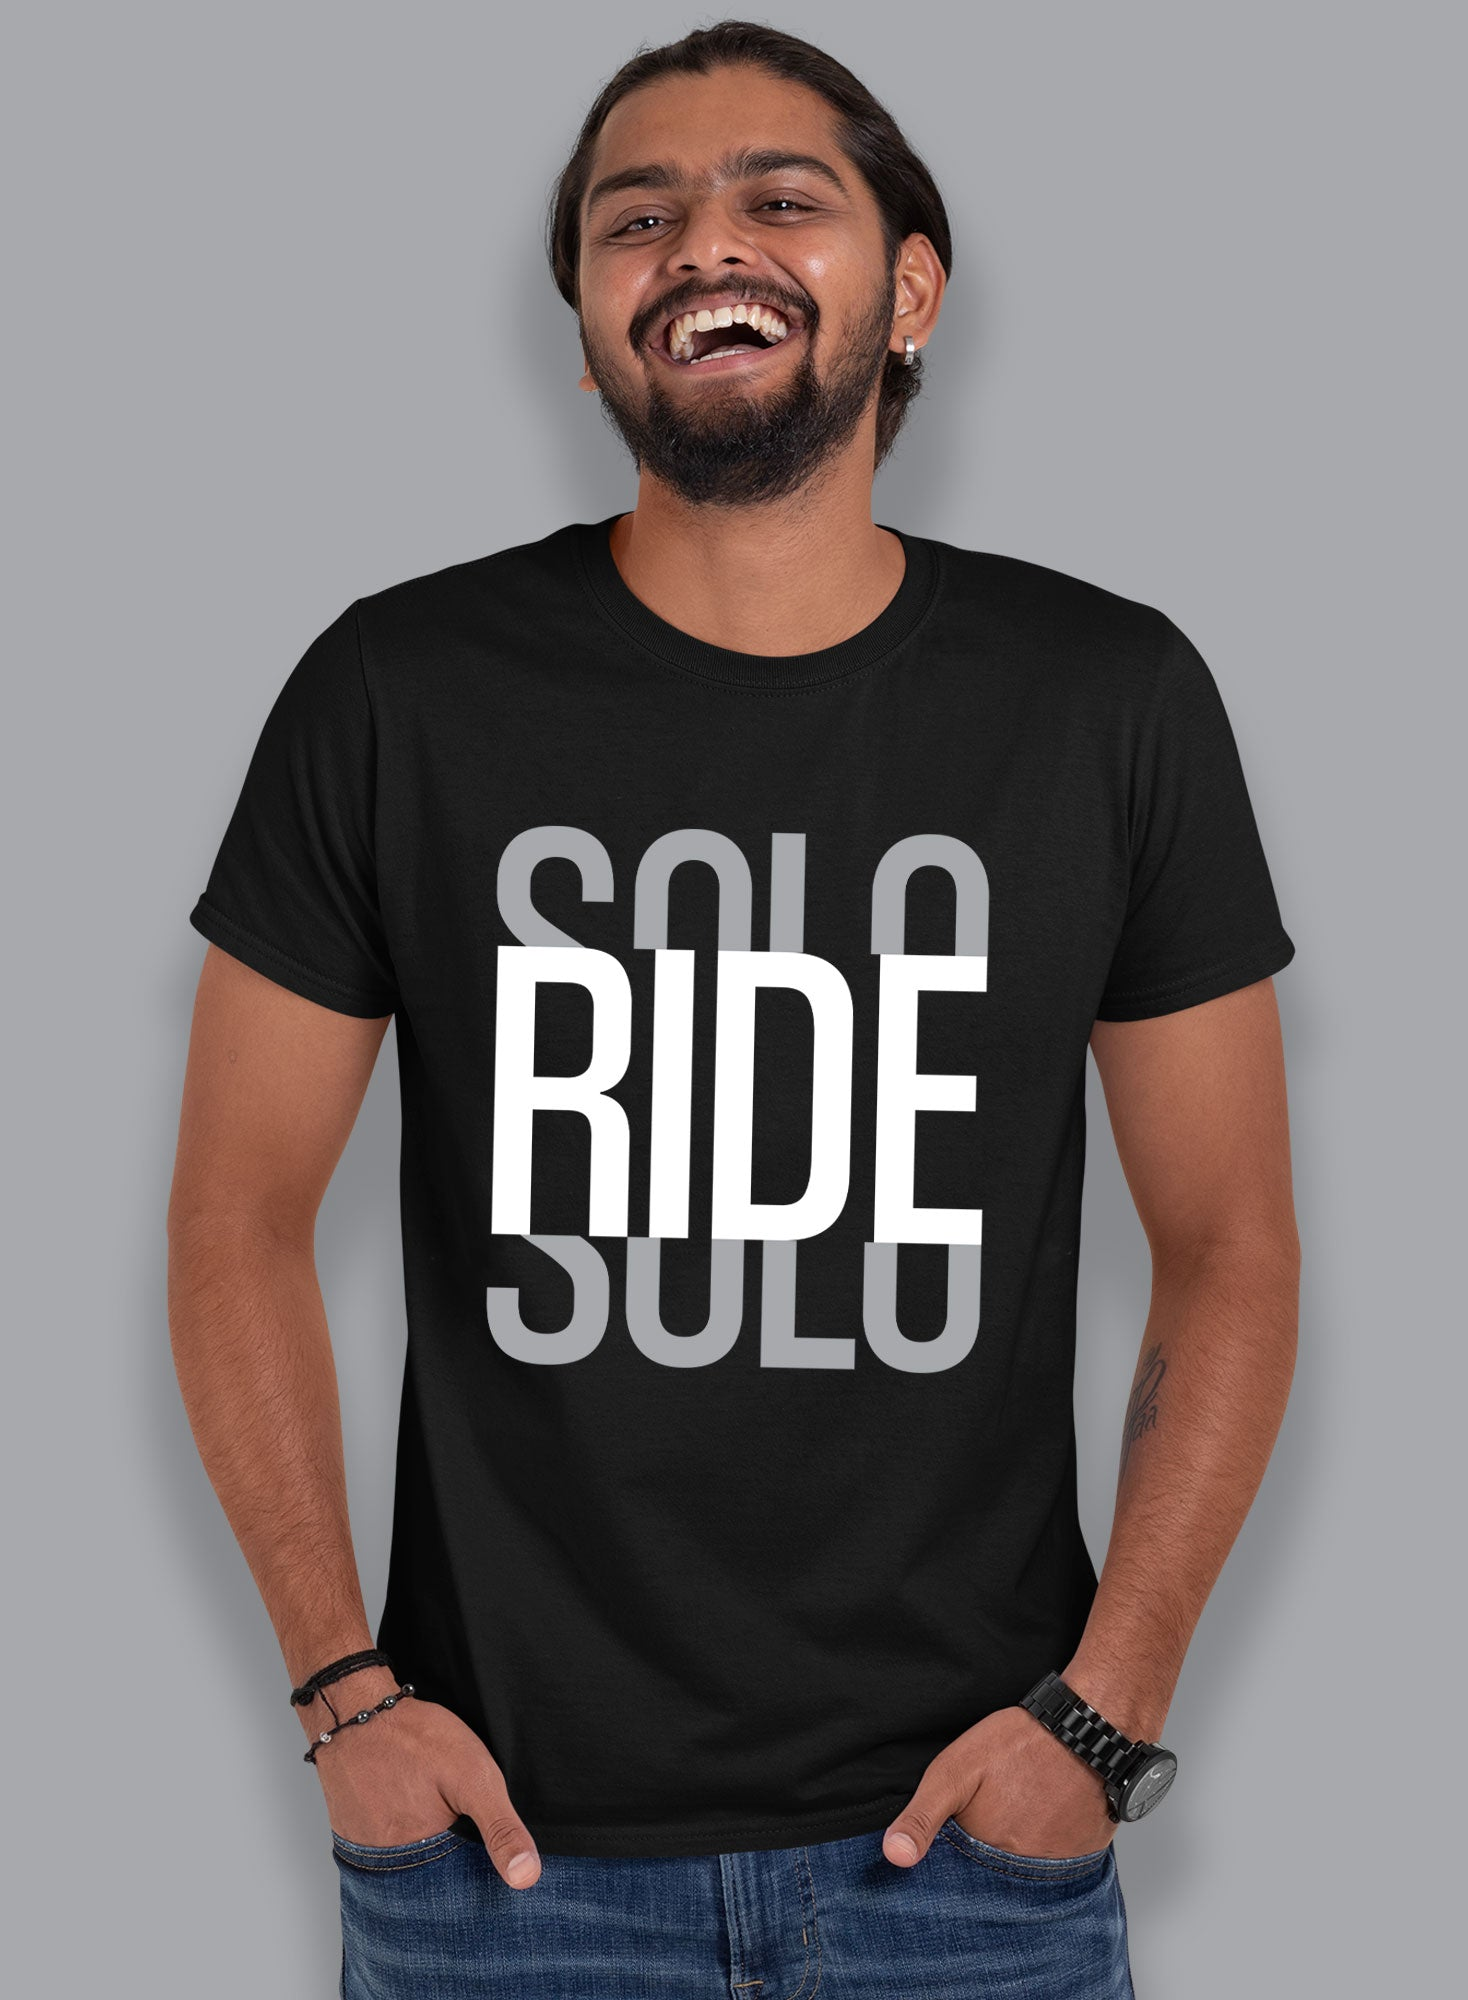 Solo Ride T-shirts